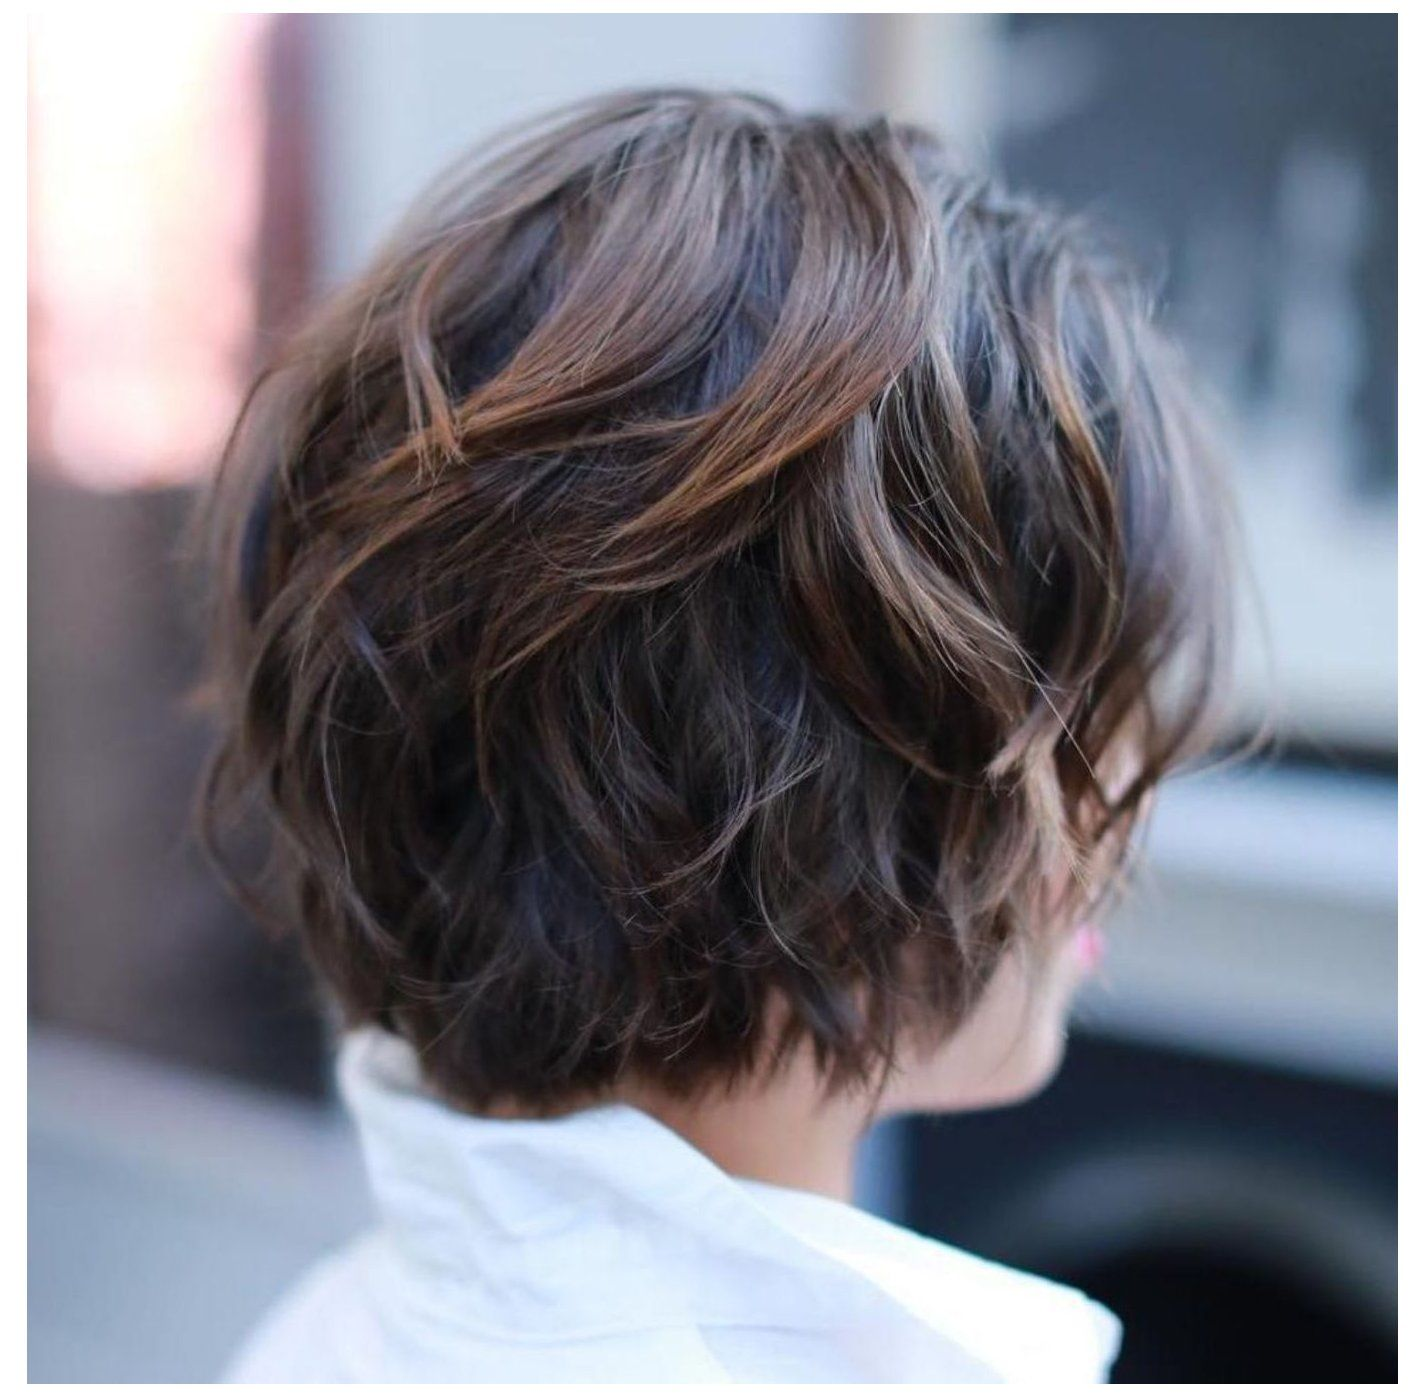 60 Classy Short Haircuts And Hairstyles For Thick Hair Short Haircuts For Women With Th In 2020 Short Hairstyles For Thick Hair Thick Hair Styles Thick Wavy Hair